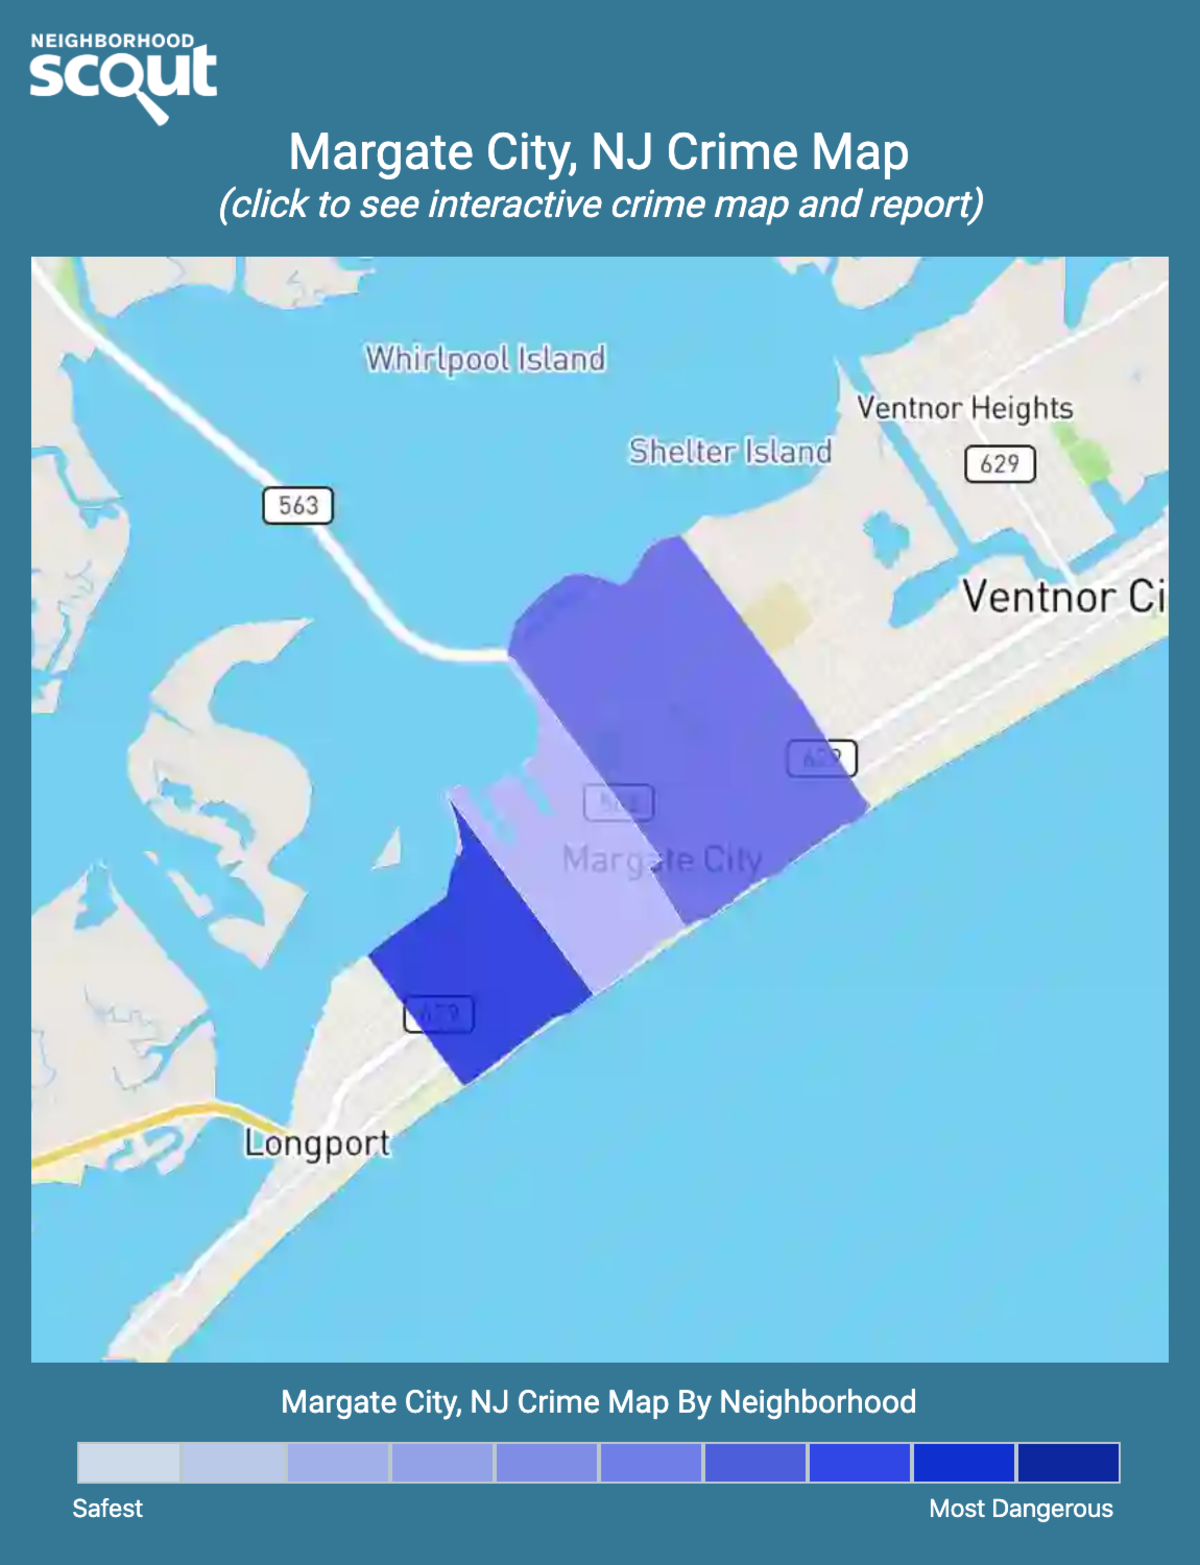 Margate City, New Jersey crime map